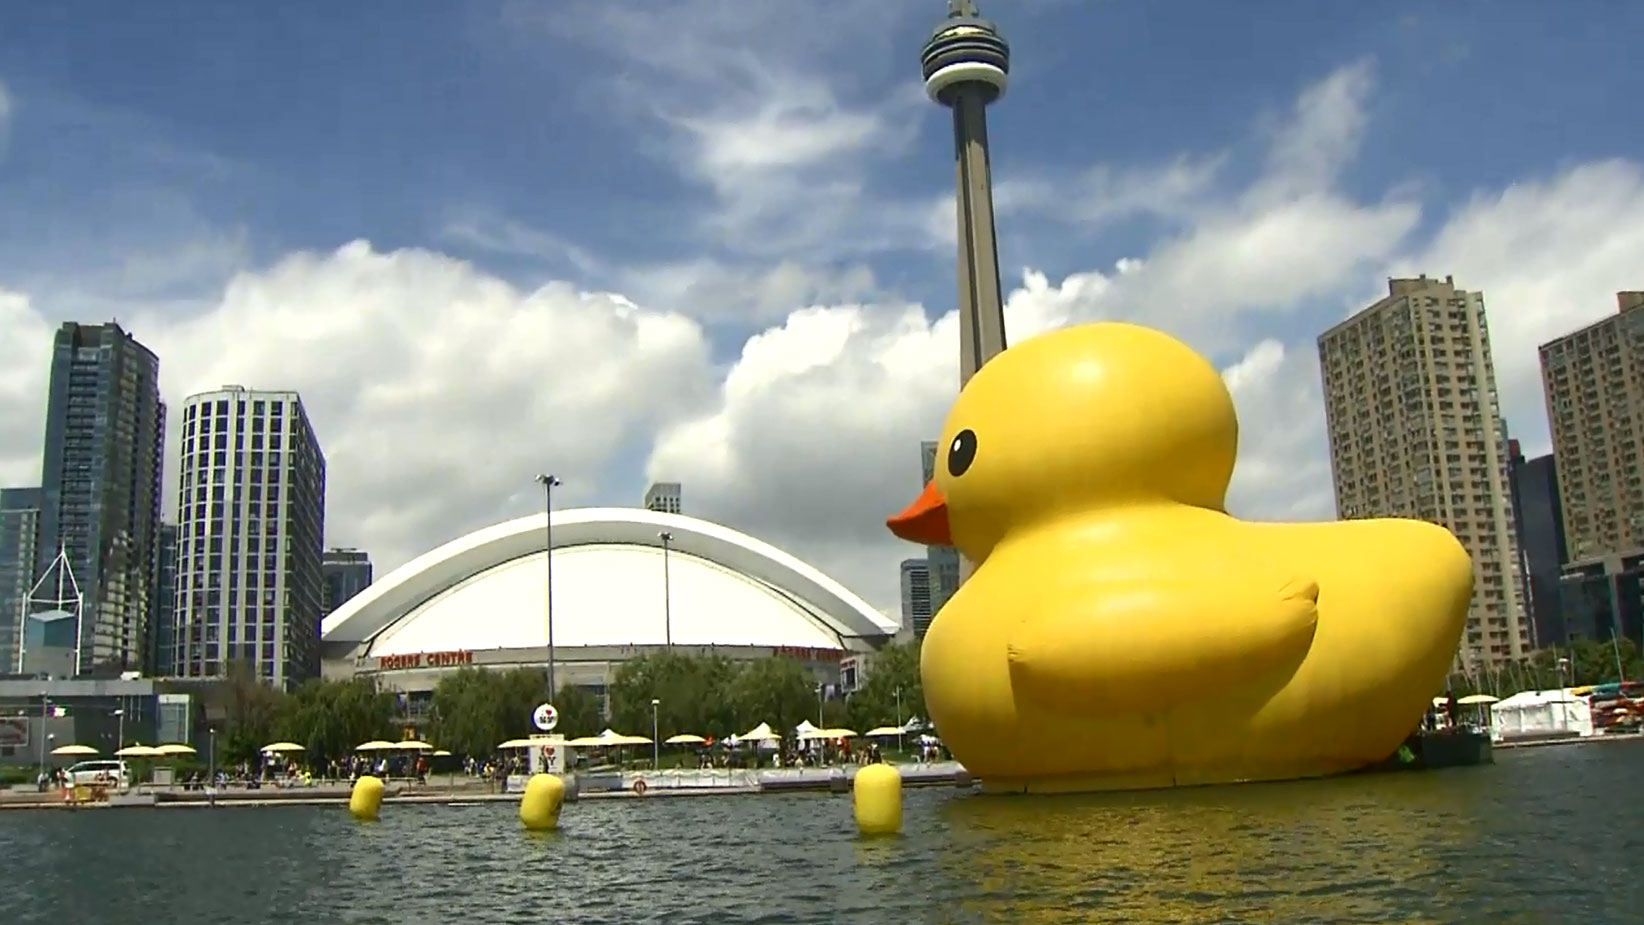 Giant rubber duck wades into Toronto after causing a flap - CityNews ...